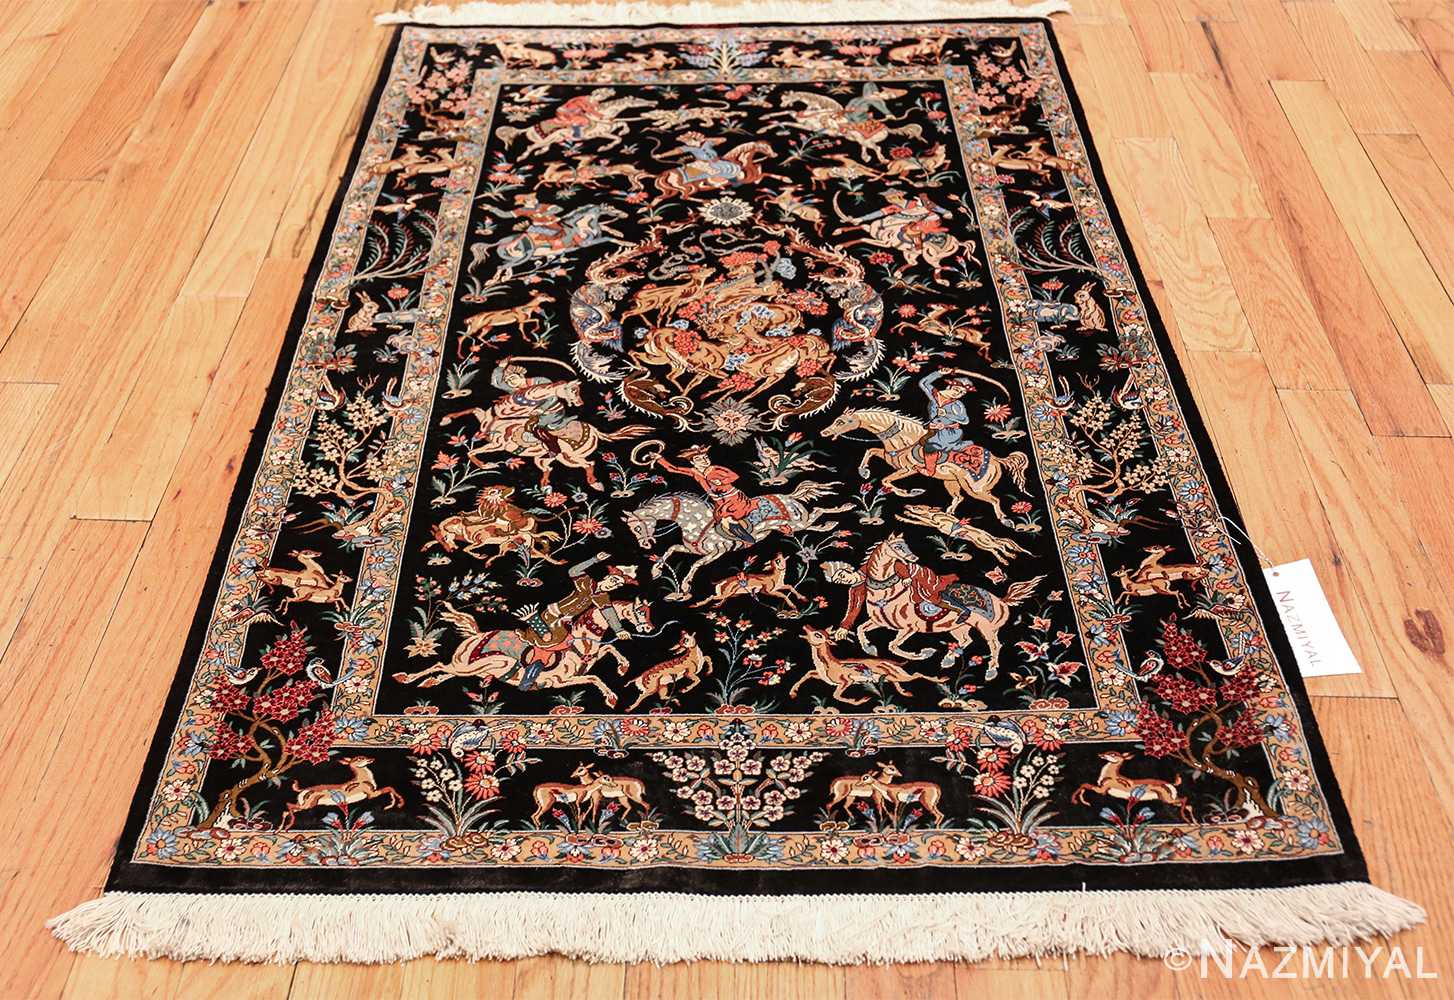 Small Black Hunting Scene Vintage Persian Silk Qum Rug